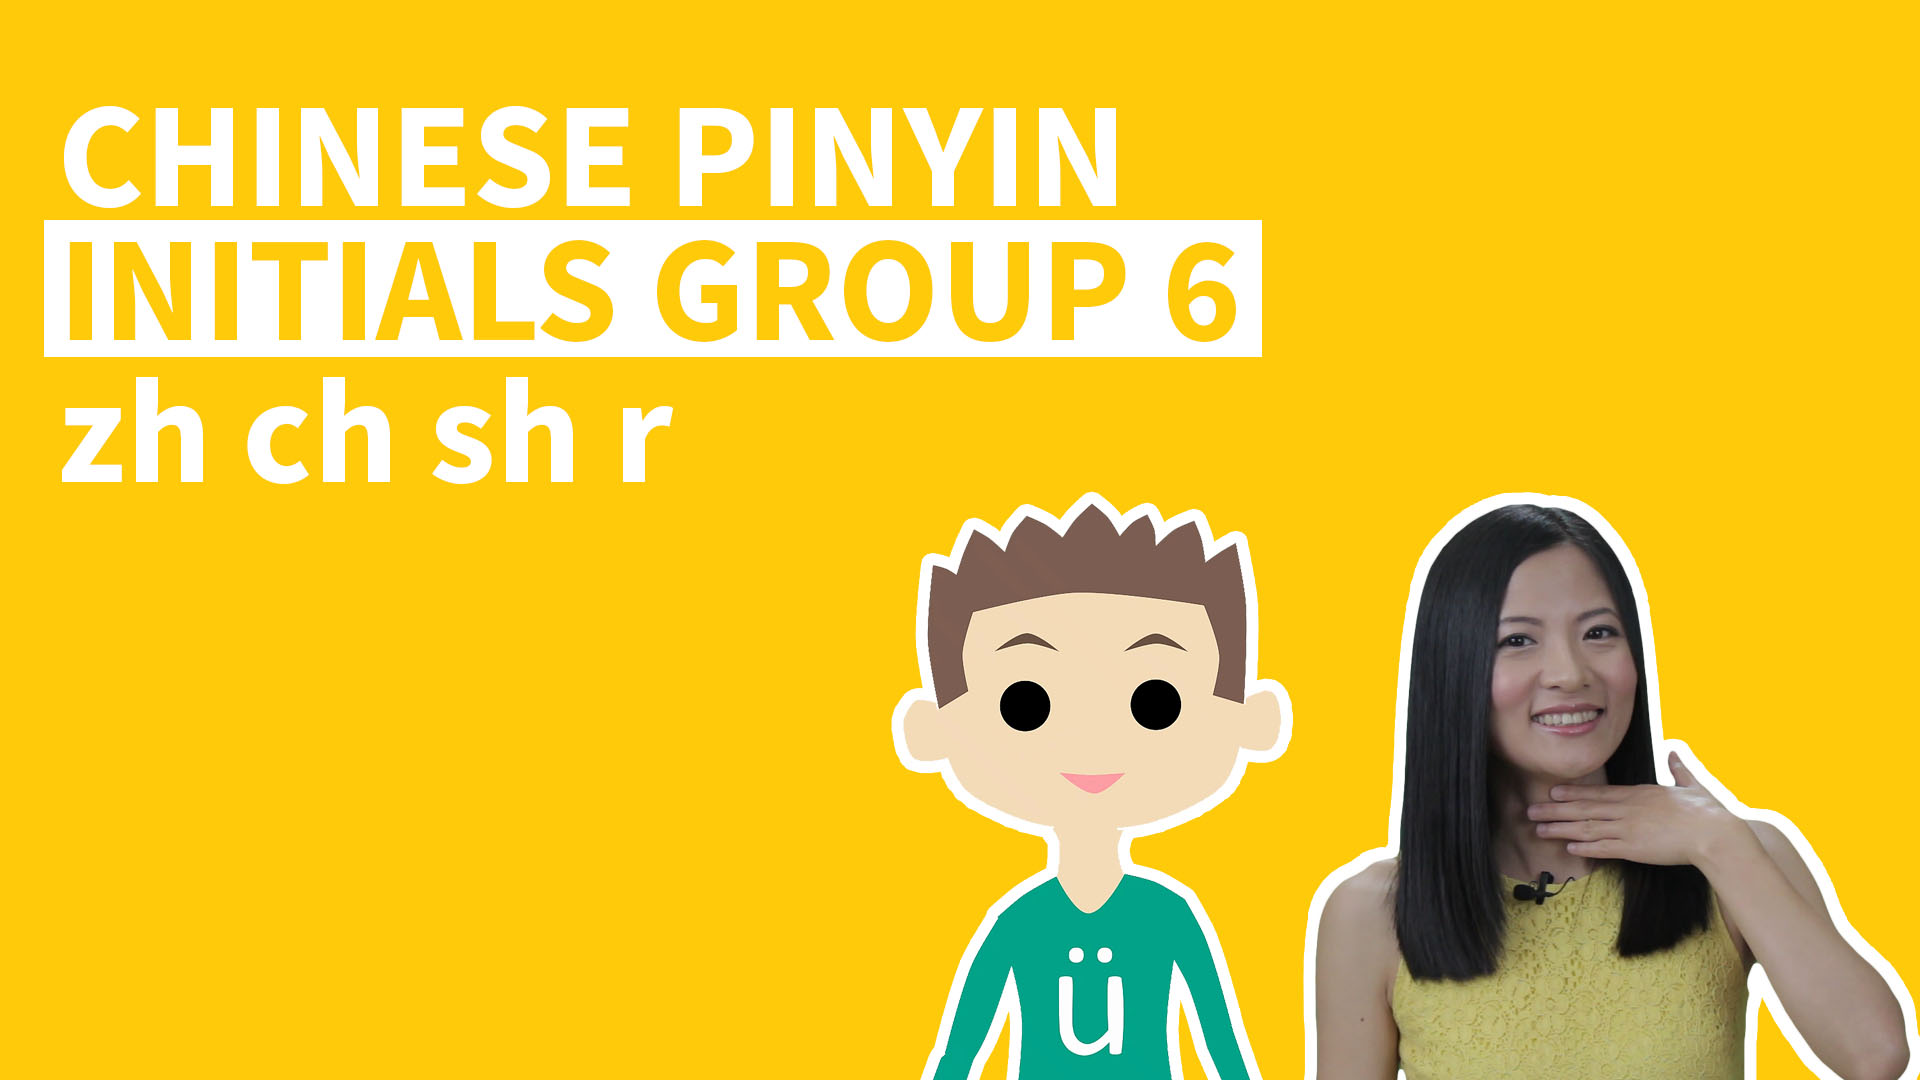 This Pinyin video covers 4 Chinese Pinyin Initials, about how to pronounce Pinyin consonants zh ch sh r with effective methods, practice and quizzes.